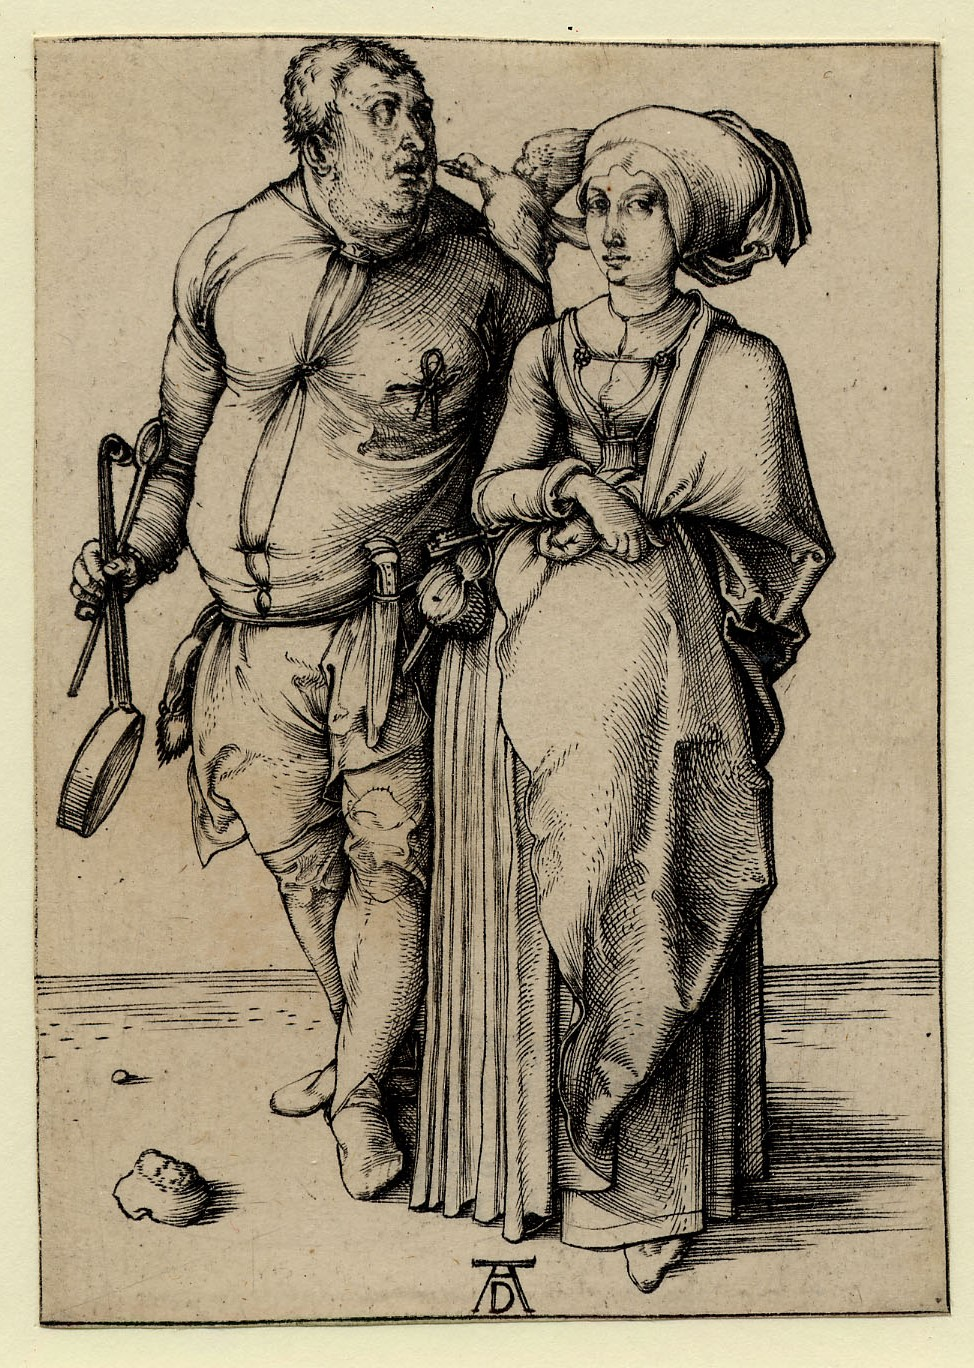 Print showing a couple. On the left is a man. He holds a frying pan and long cooking spoon and has a knife in his belt. He has a live magpie on his left shoulder, which he looks towards. The woman stands on the right, she wears a large headscarf and had her wrists crossed at her waist.  Durer's monogram is at the bottom of the print.